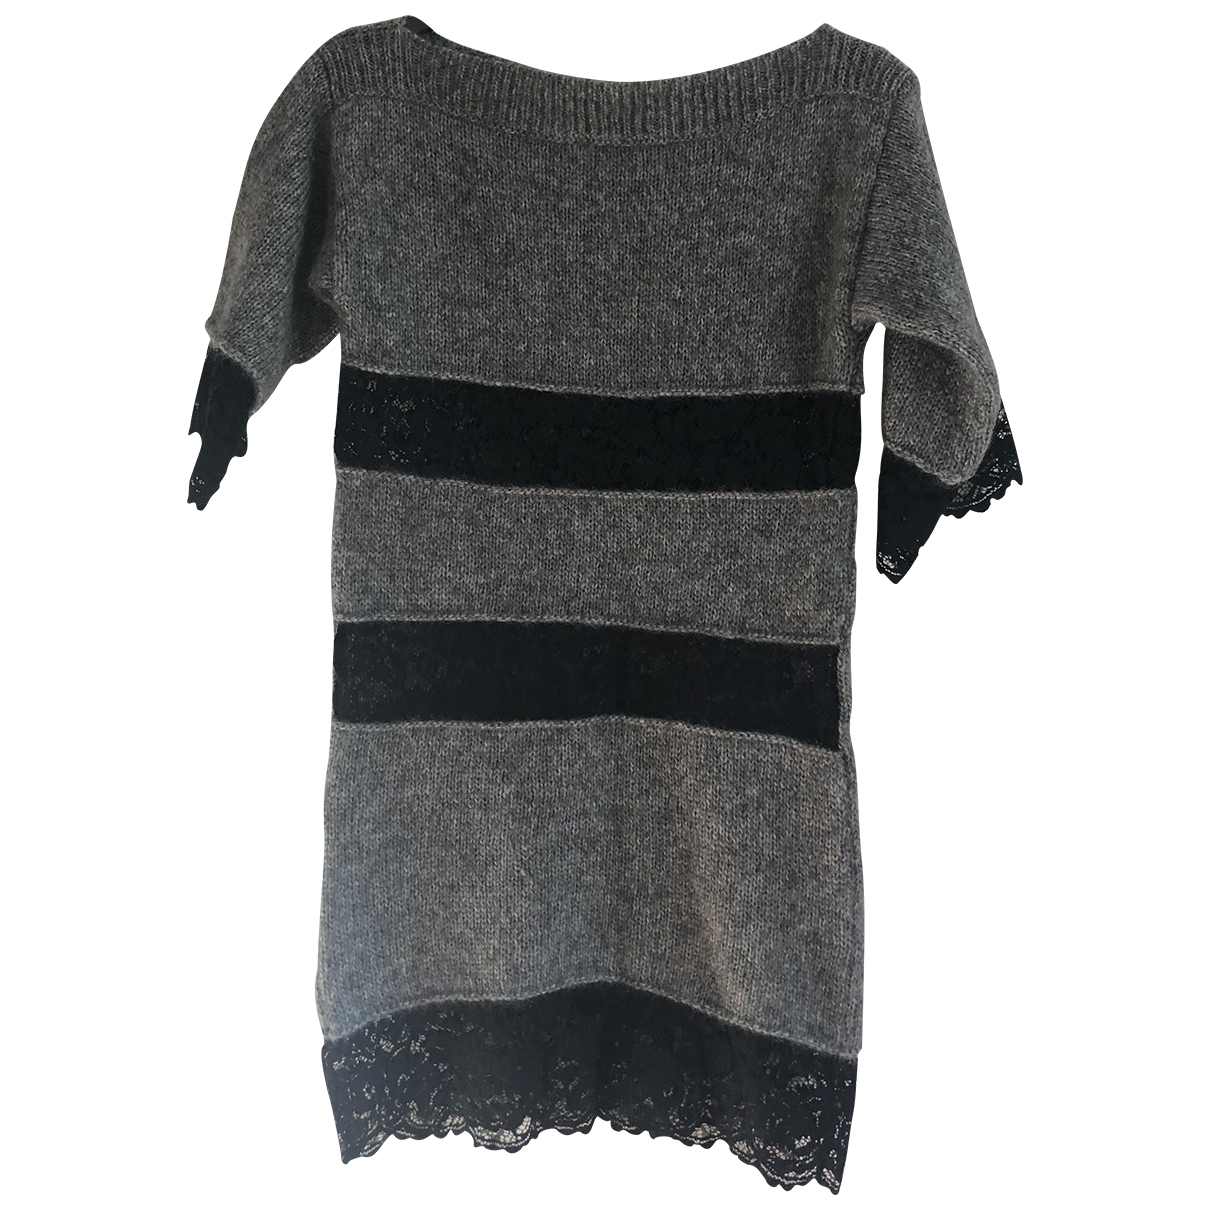 D&g \N Grey Wool Knitwear for Women 38 IT